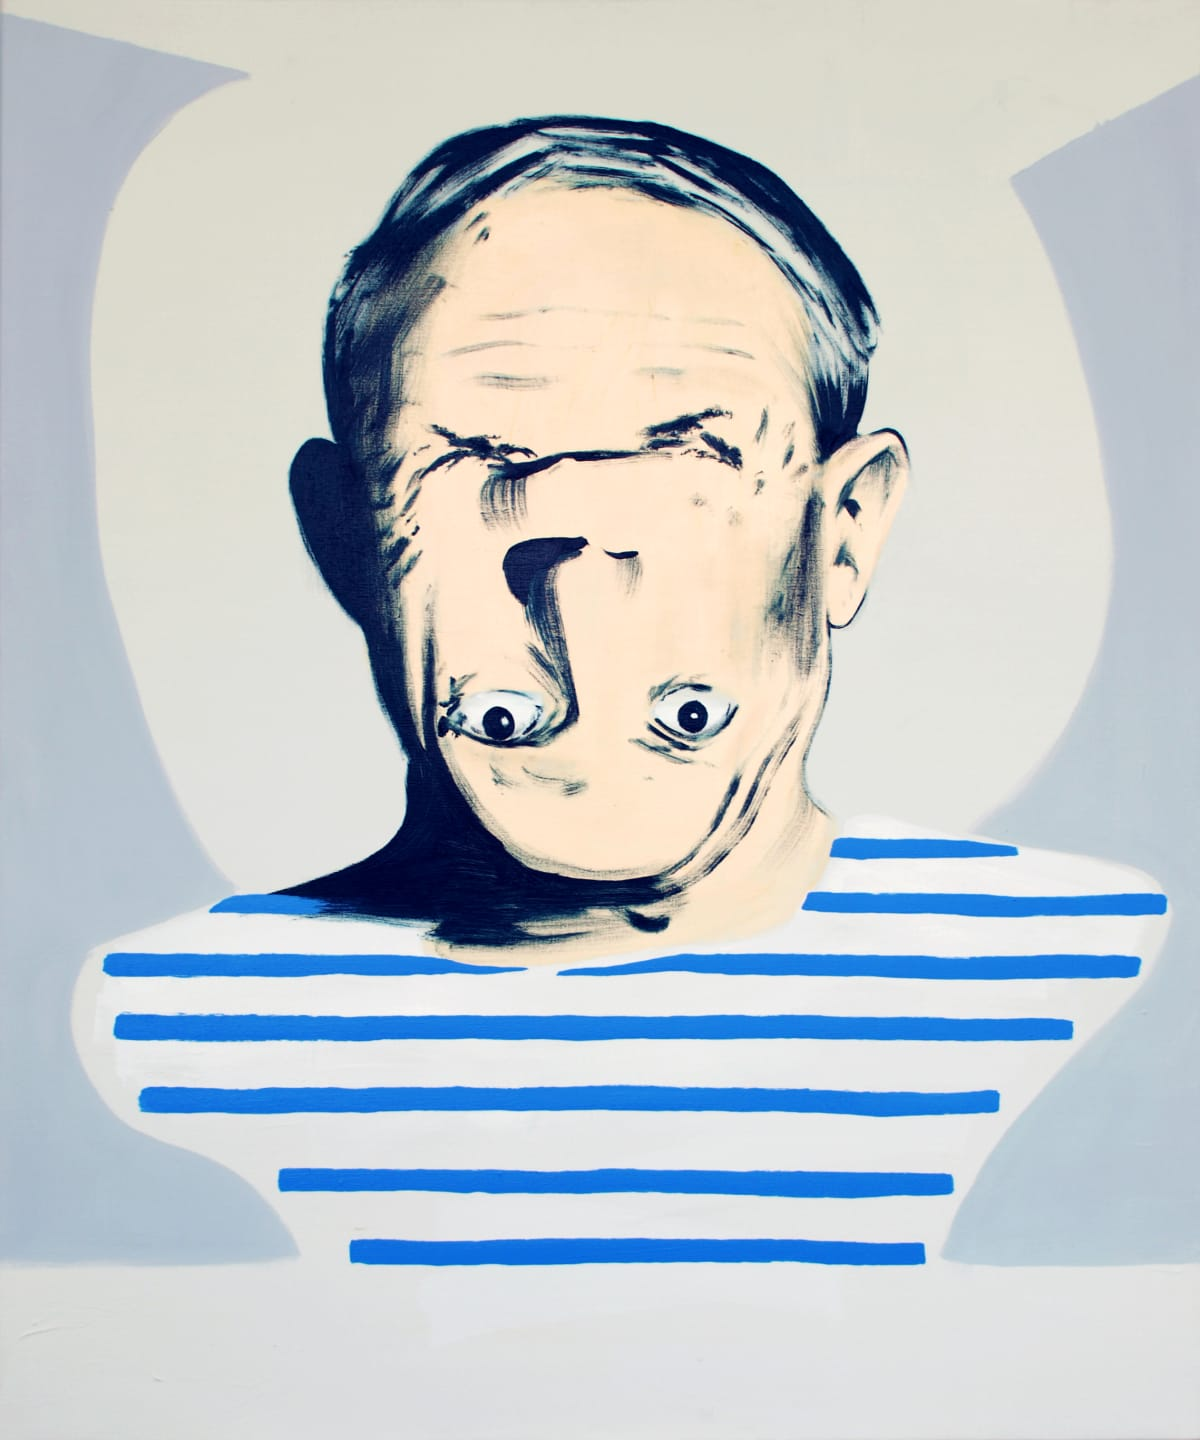 Darren Coffield Being Pablo Picasso, 2009 Acrylic on canvas 92 x 76 cm 36 1/4 x 29 7/8 in